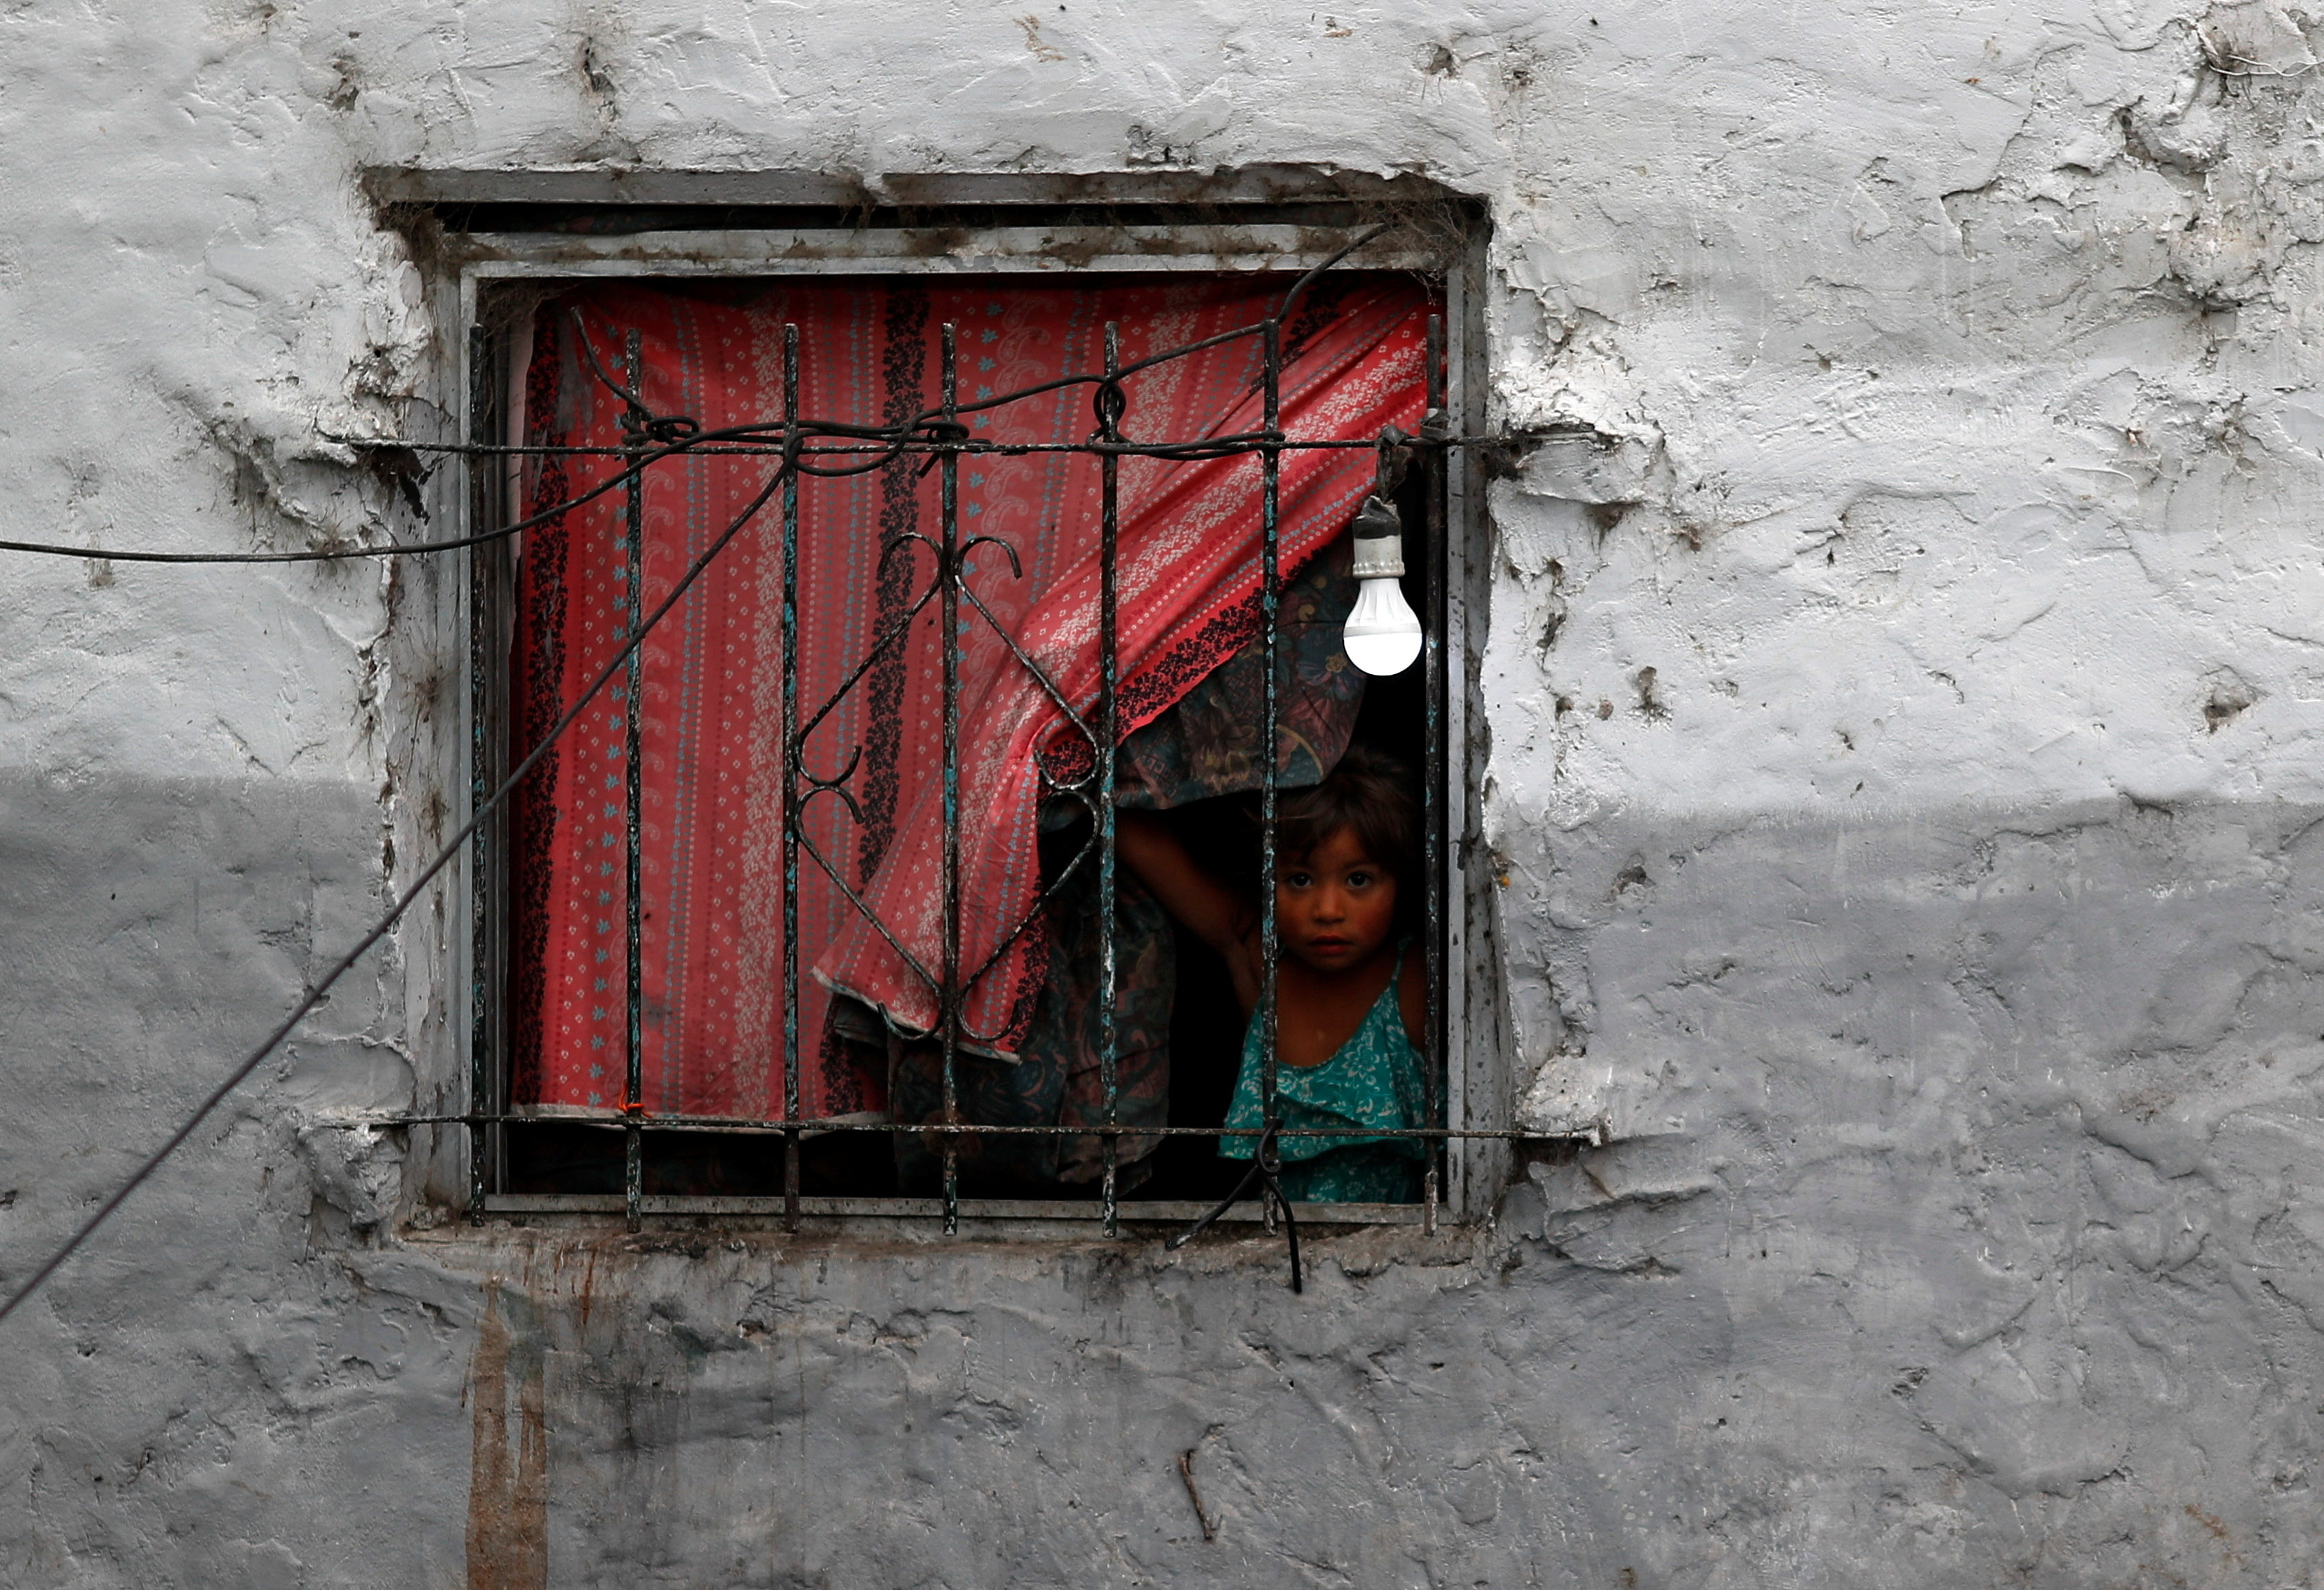 A girl looks from the window of her family's house, during the coronavirus disease (COVID-19) outbreak, in Buenos Aires, Argentina December 15, 2020. Picture taken December 15, 2020. REUTERS/Agustin Marcarian - RC22PK9MCBX2